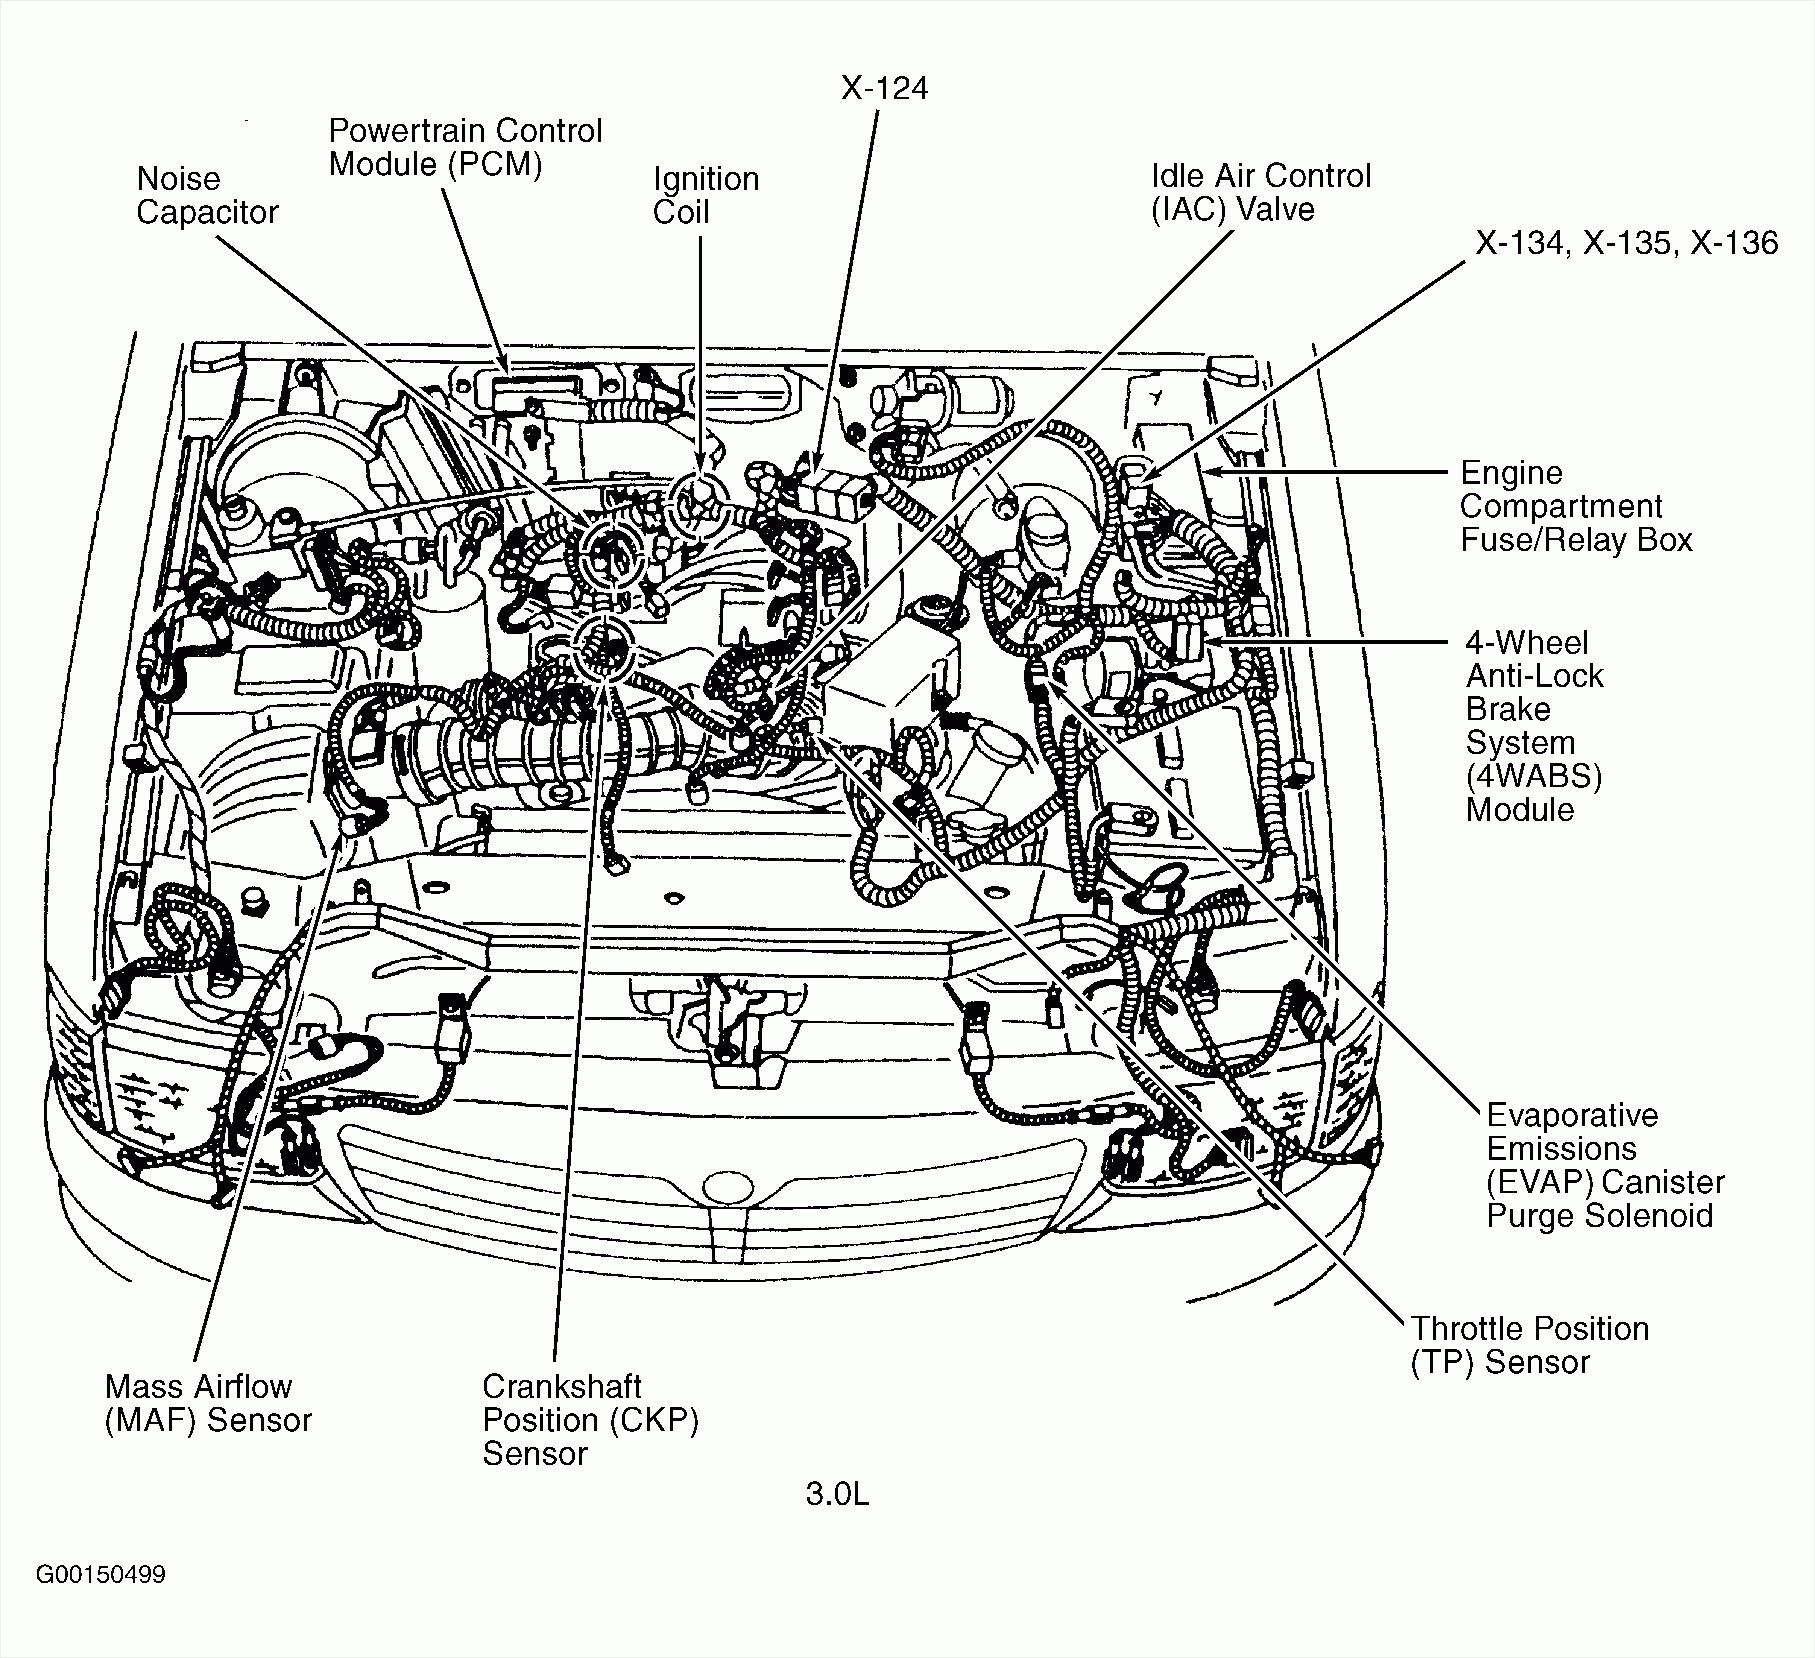 Mazda Millenia Engine Diagram: 96 Blazer 4 3 Vortec Vacuum Diagram At Ariaseda.org